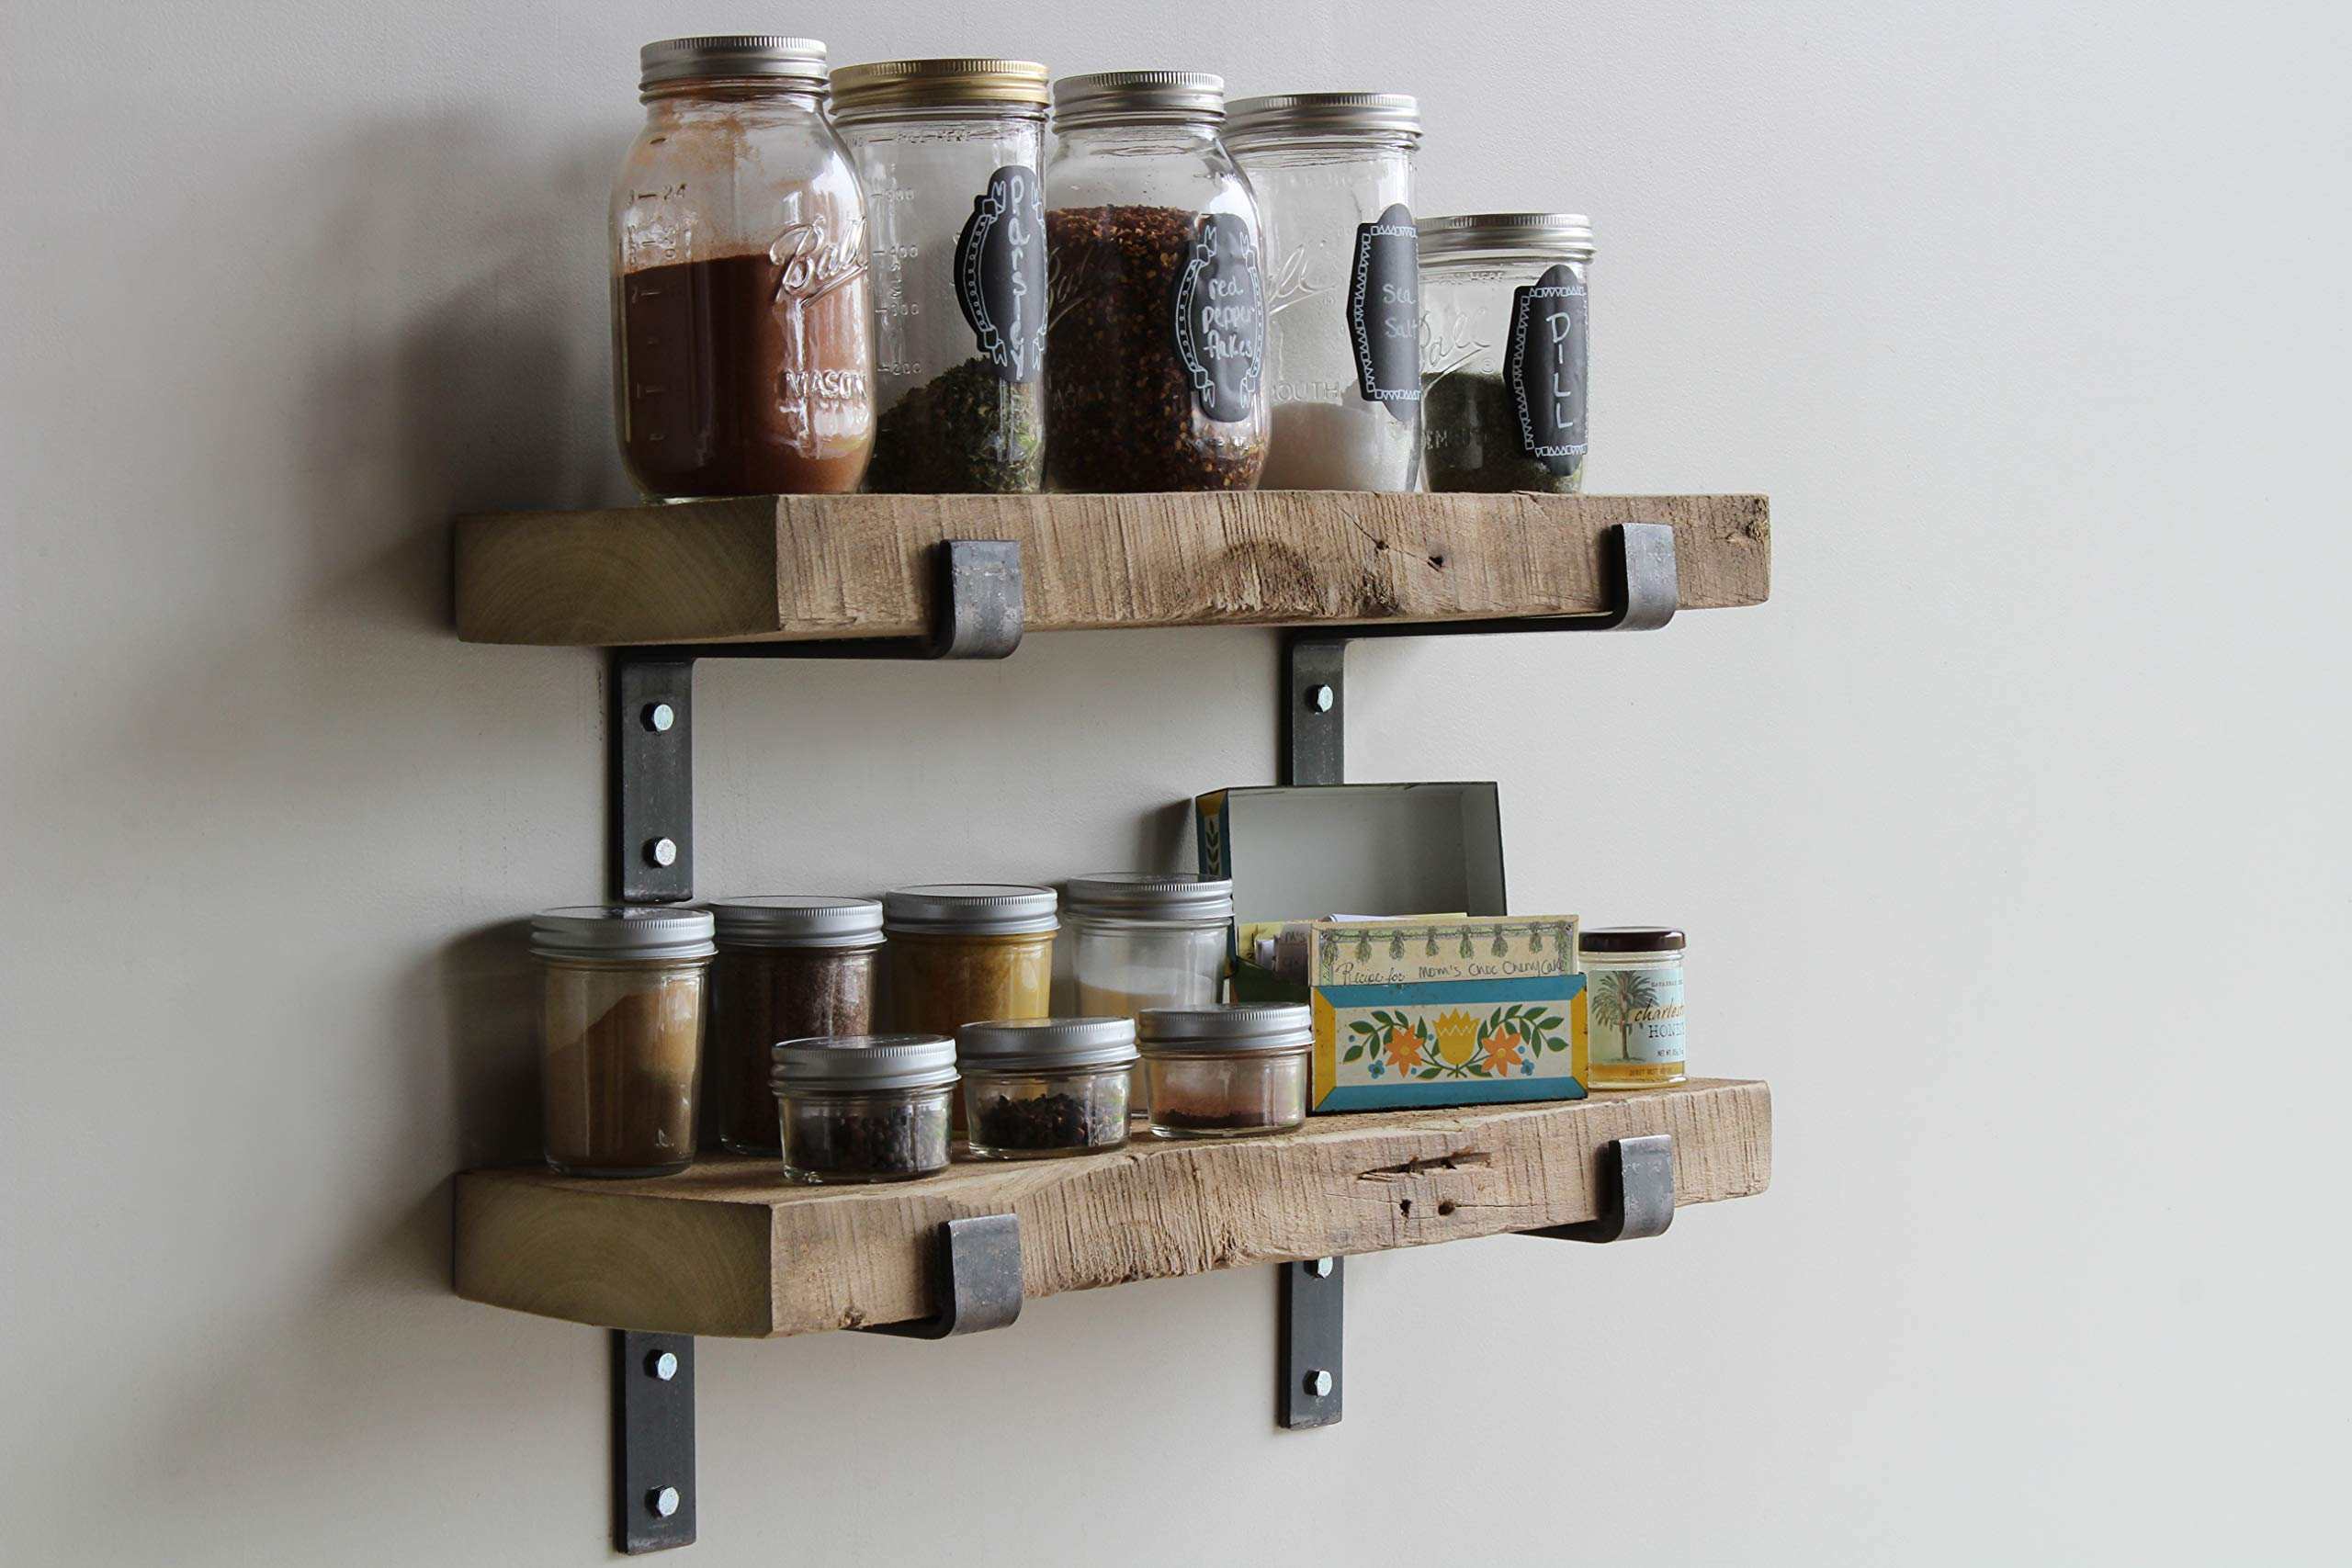 Reclaimed Wood Accent Shelves Rustic Industrial - Amish Handcrafted in Lancaster County, PA - Set of Two | 24 Inches, (Genuine Salvaged/Reclaimed with Raw Metal Brackets) (Natural 24''x 7''x 2'') by Urban Legacy (Image #3)